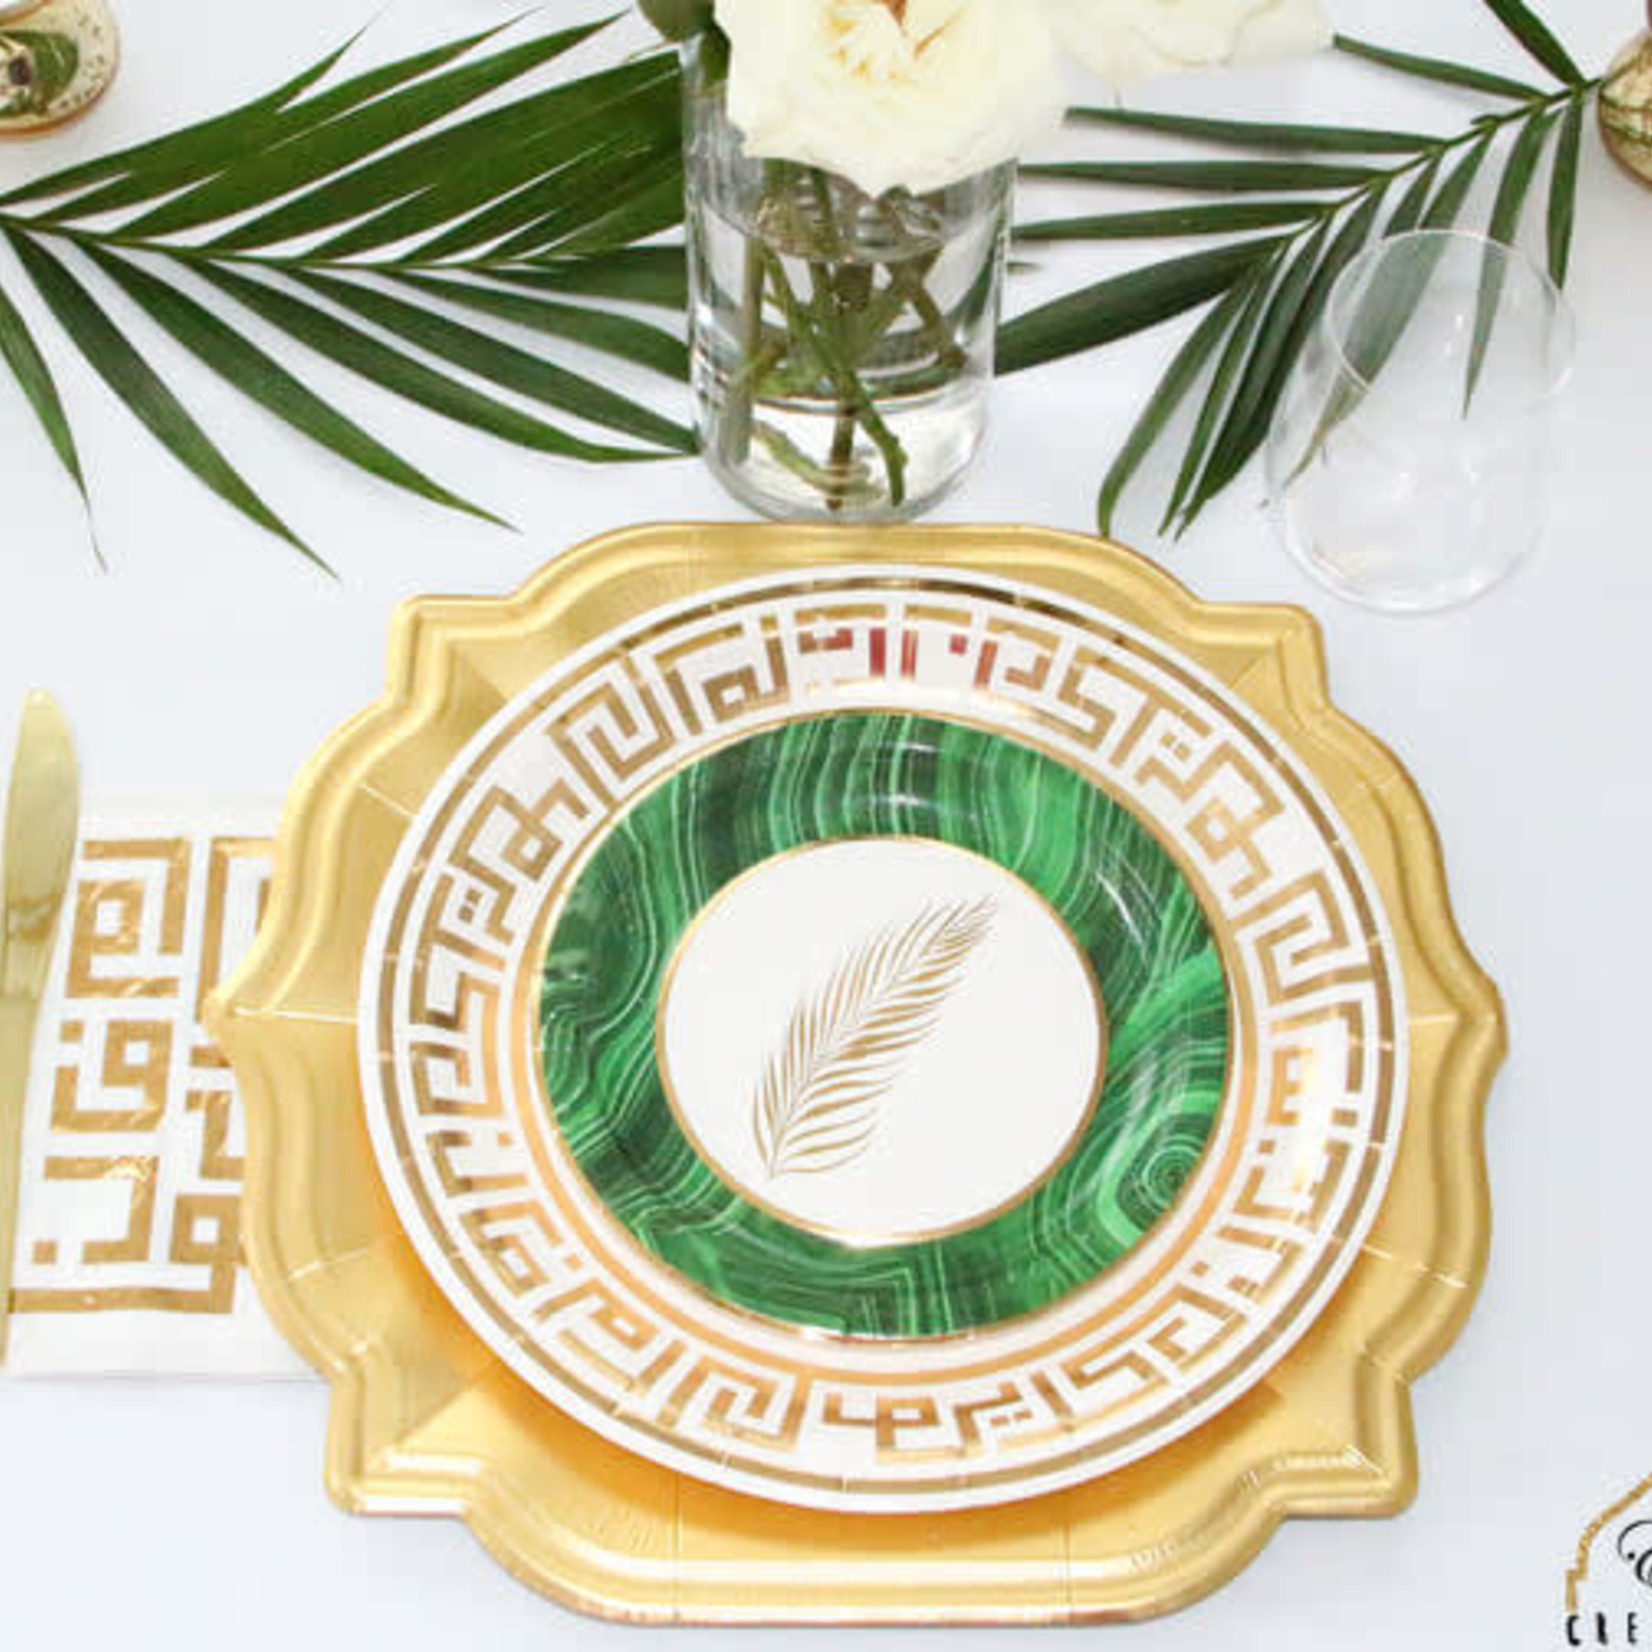 Eid Creations Dome Charger Plate